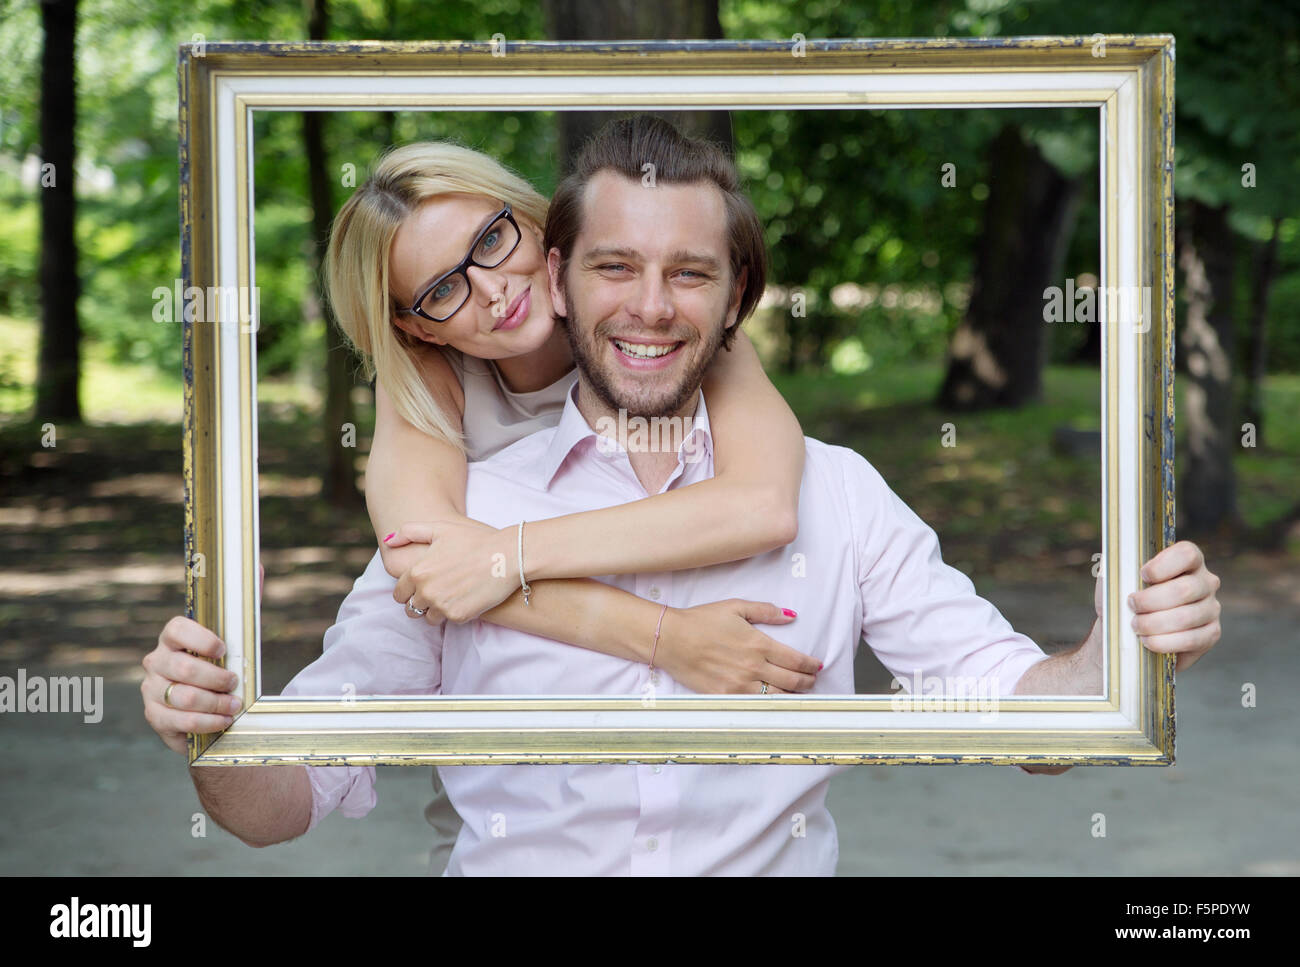 Delighted married couple taking the conceptual photo - Stock Image